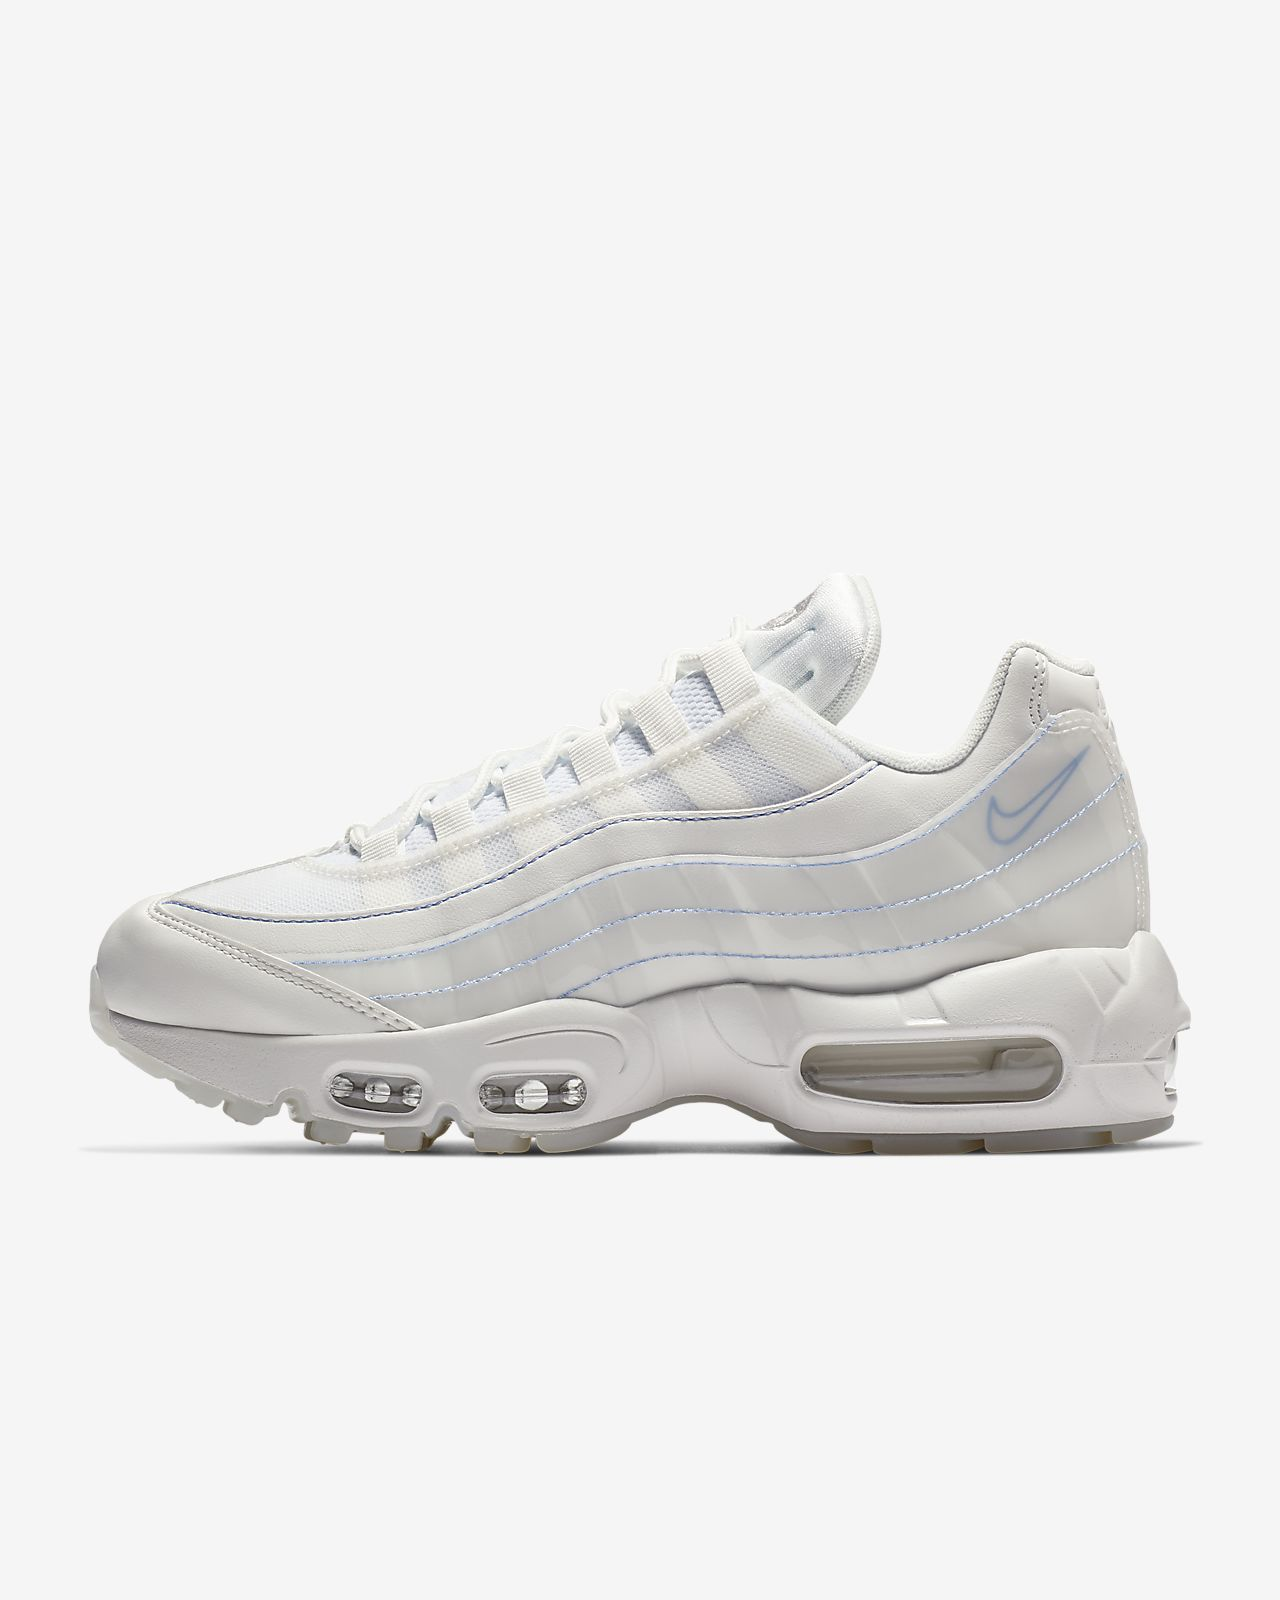 Nike Air Max 95 SE Women's Shoe